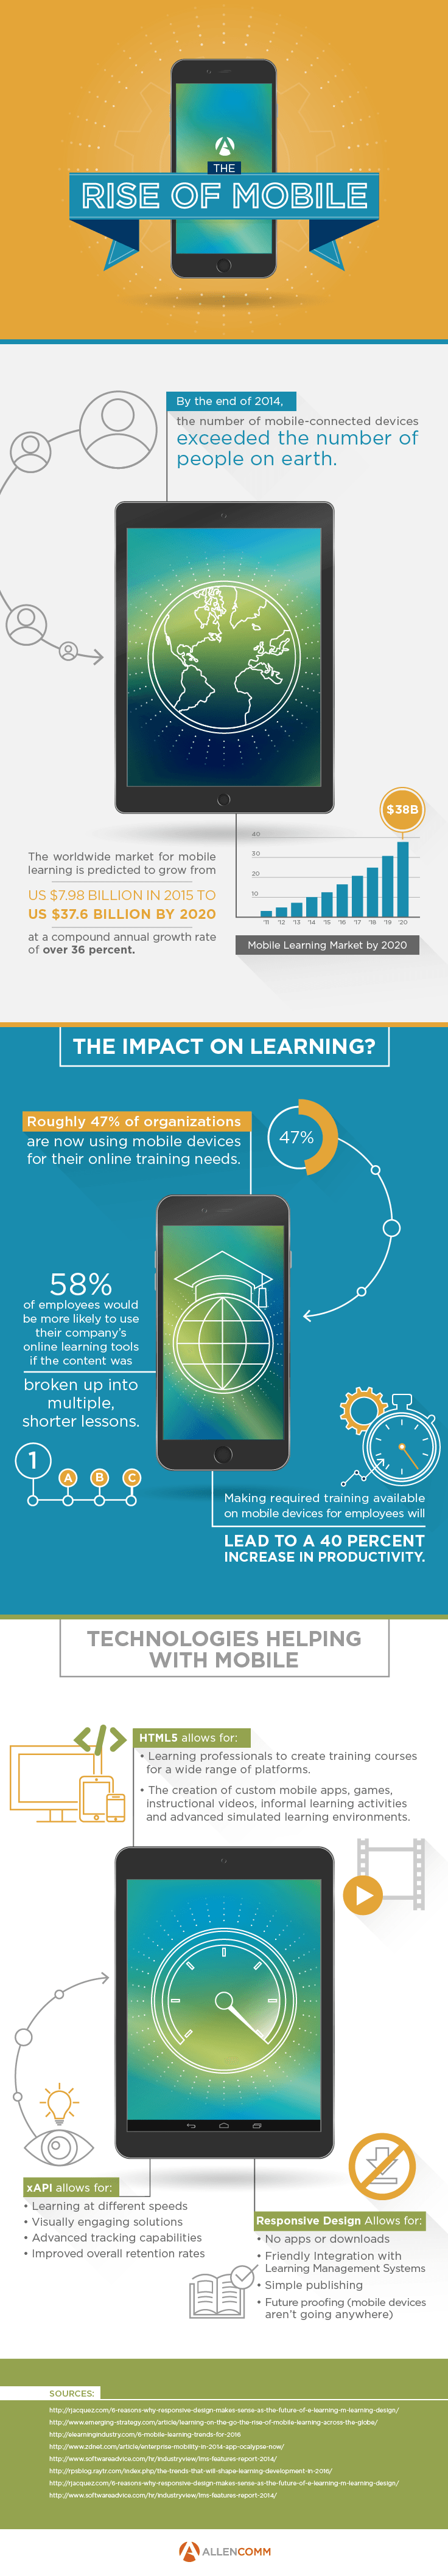 The Rise of Mobile Learning Infographic